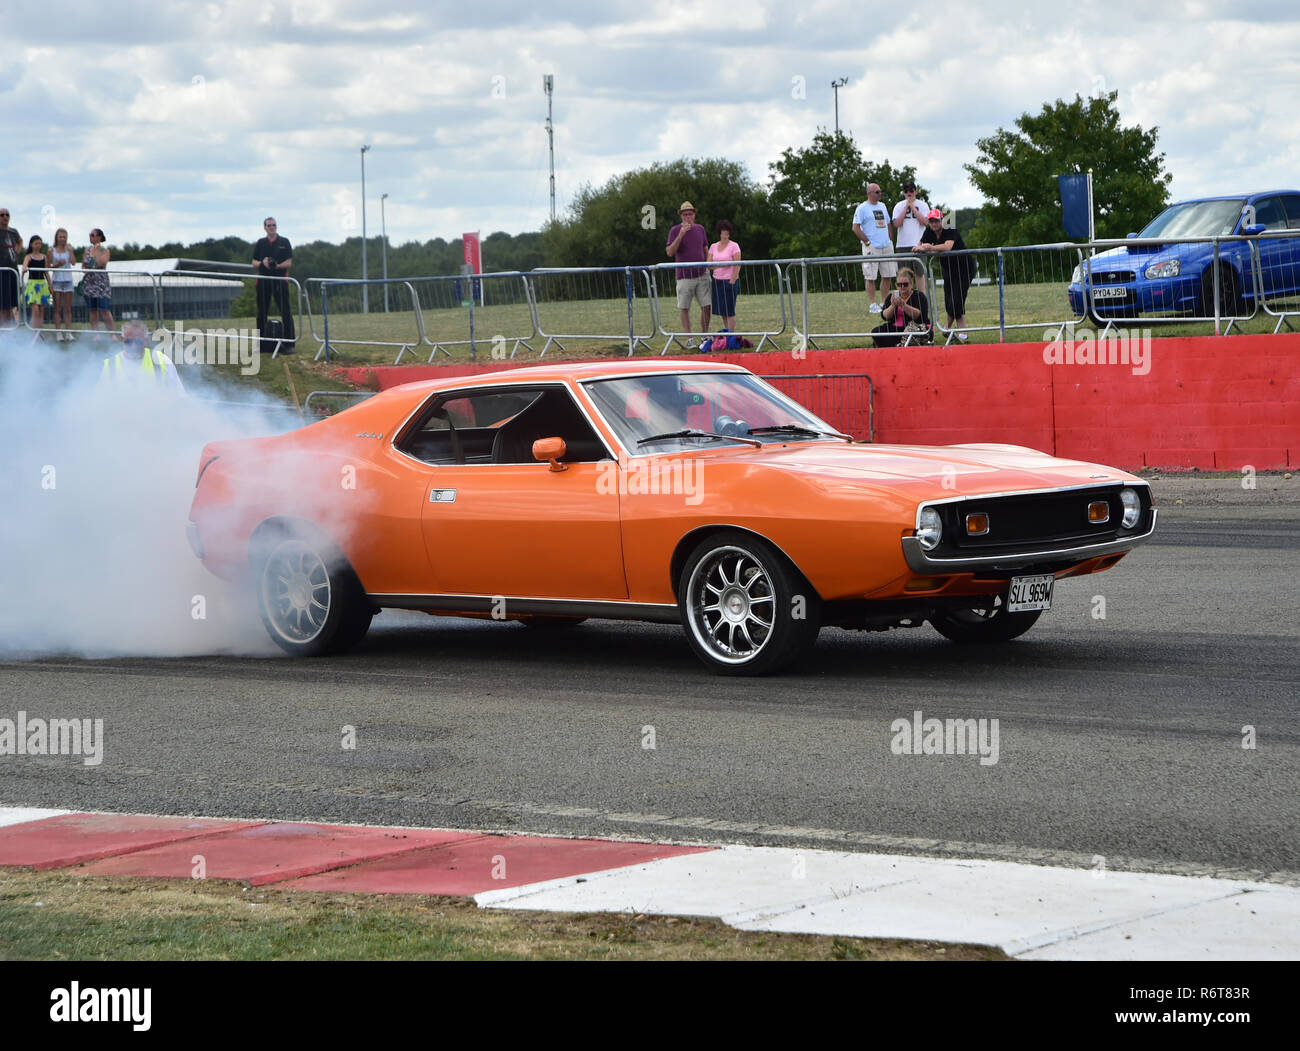 Amc Javelin 1973 Sll 969 W Uk Street Machines Silverstone Classic 2014 2014 Classic Racing Cars Drag Racing Historic Racing Cars Hot Rods H Stock Photo Alamy